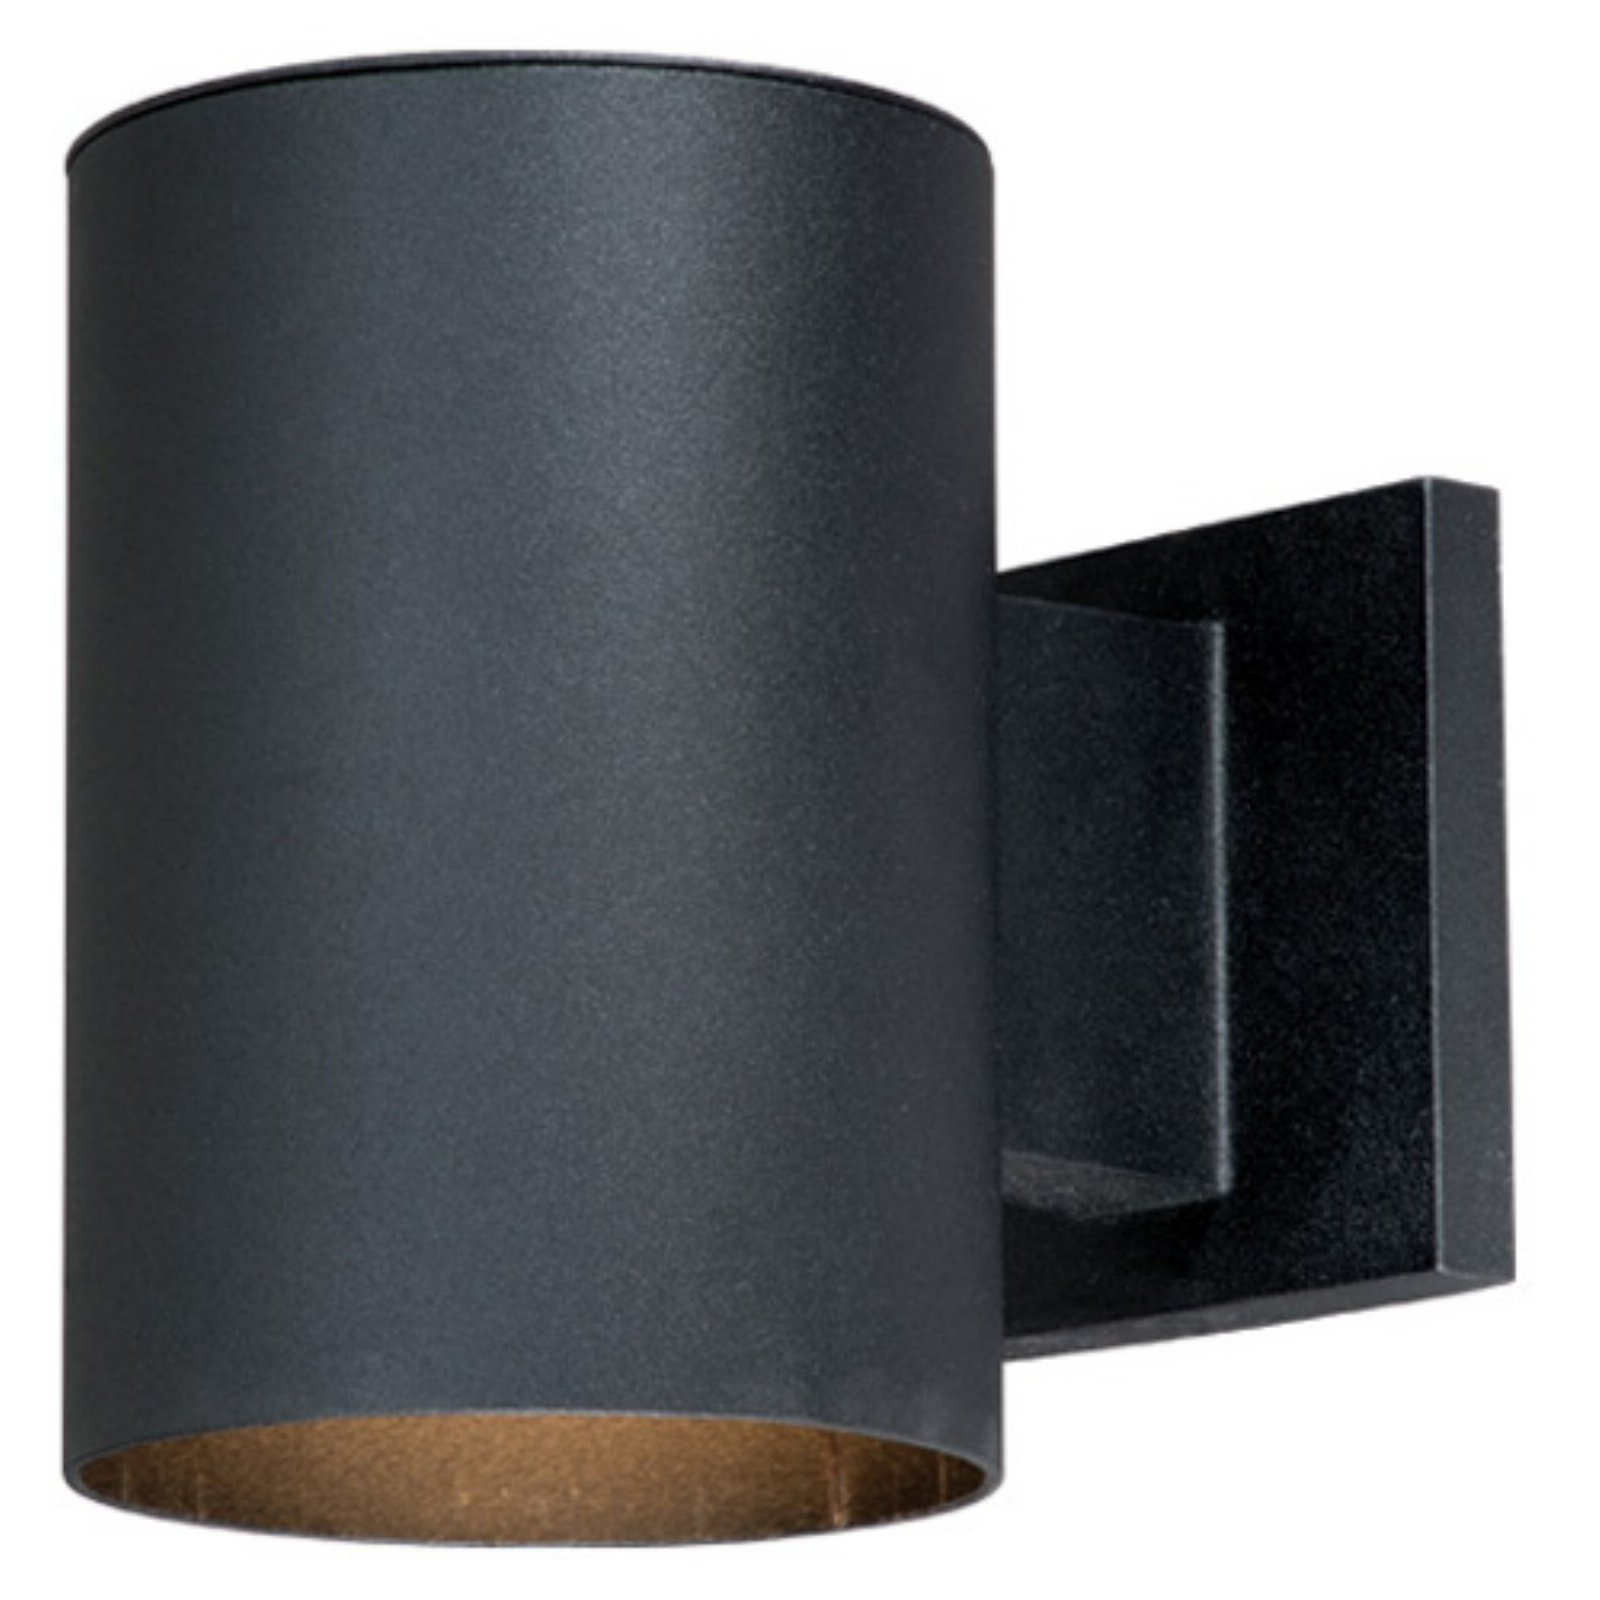 Vaxcel Chiasso CO-OWD050 Outdoor Wall Sconce